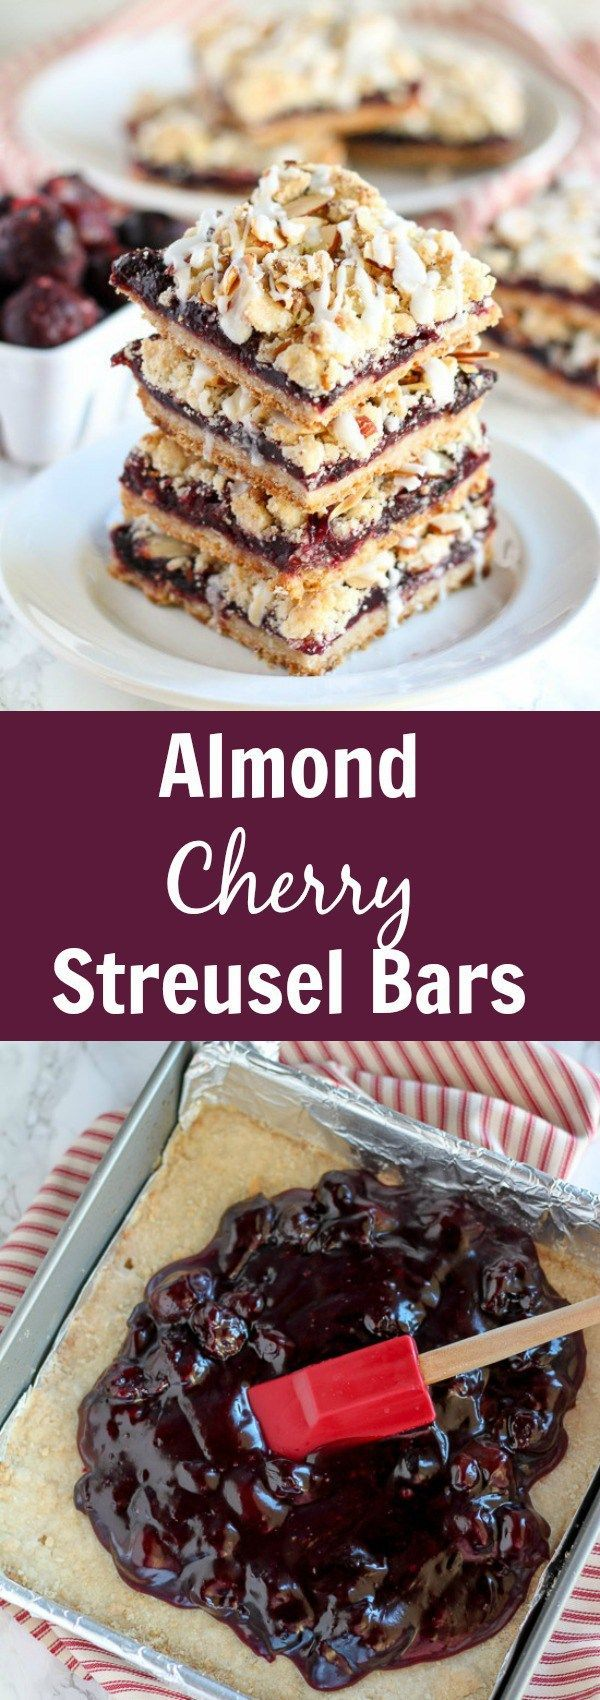 ... streusel cherry cheesecake bar s almond streusel cherry cheesecake bar